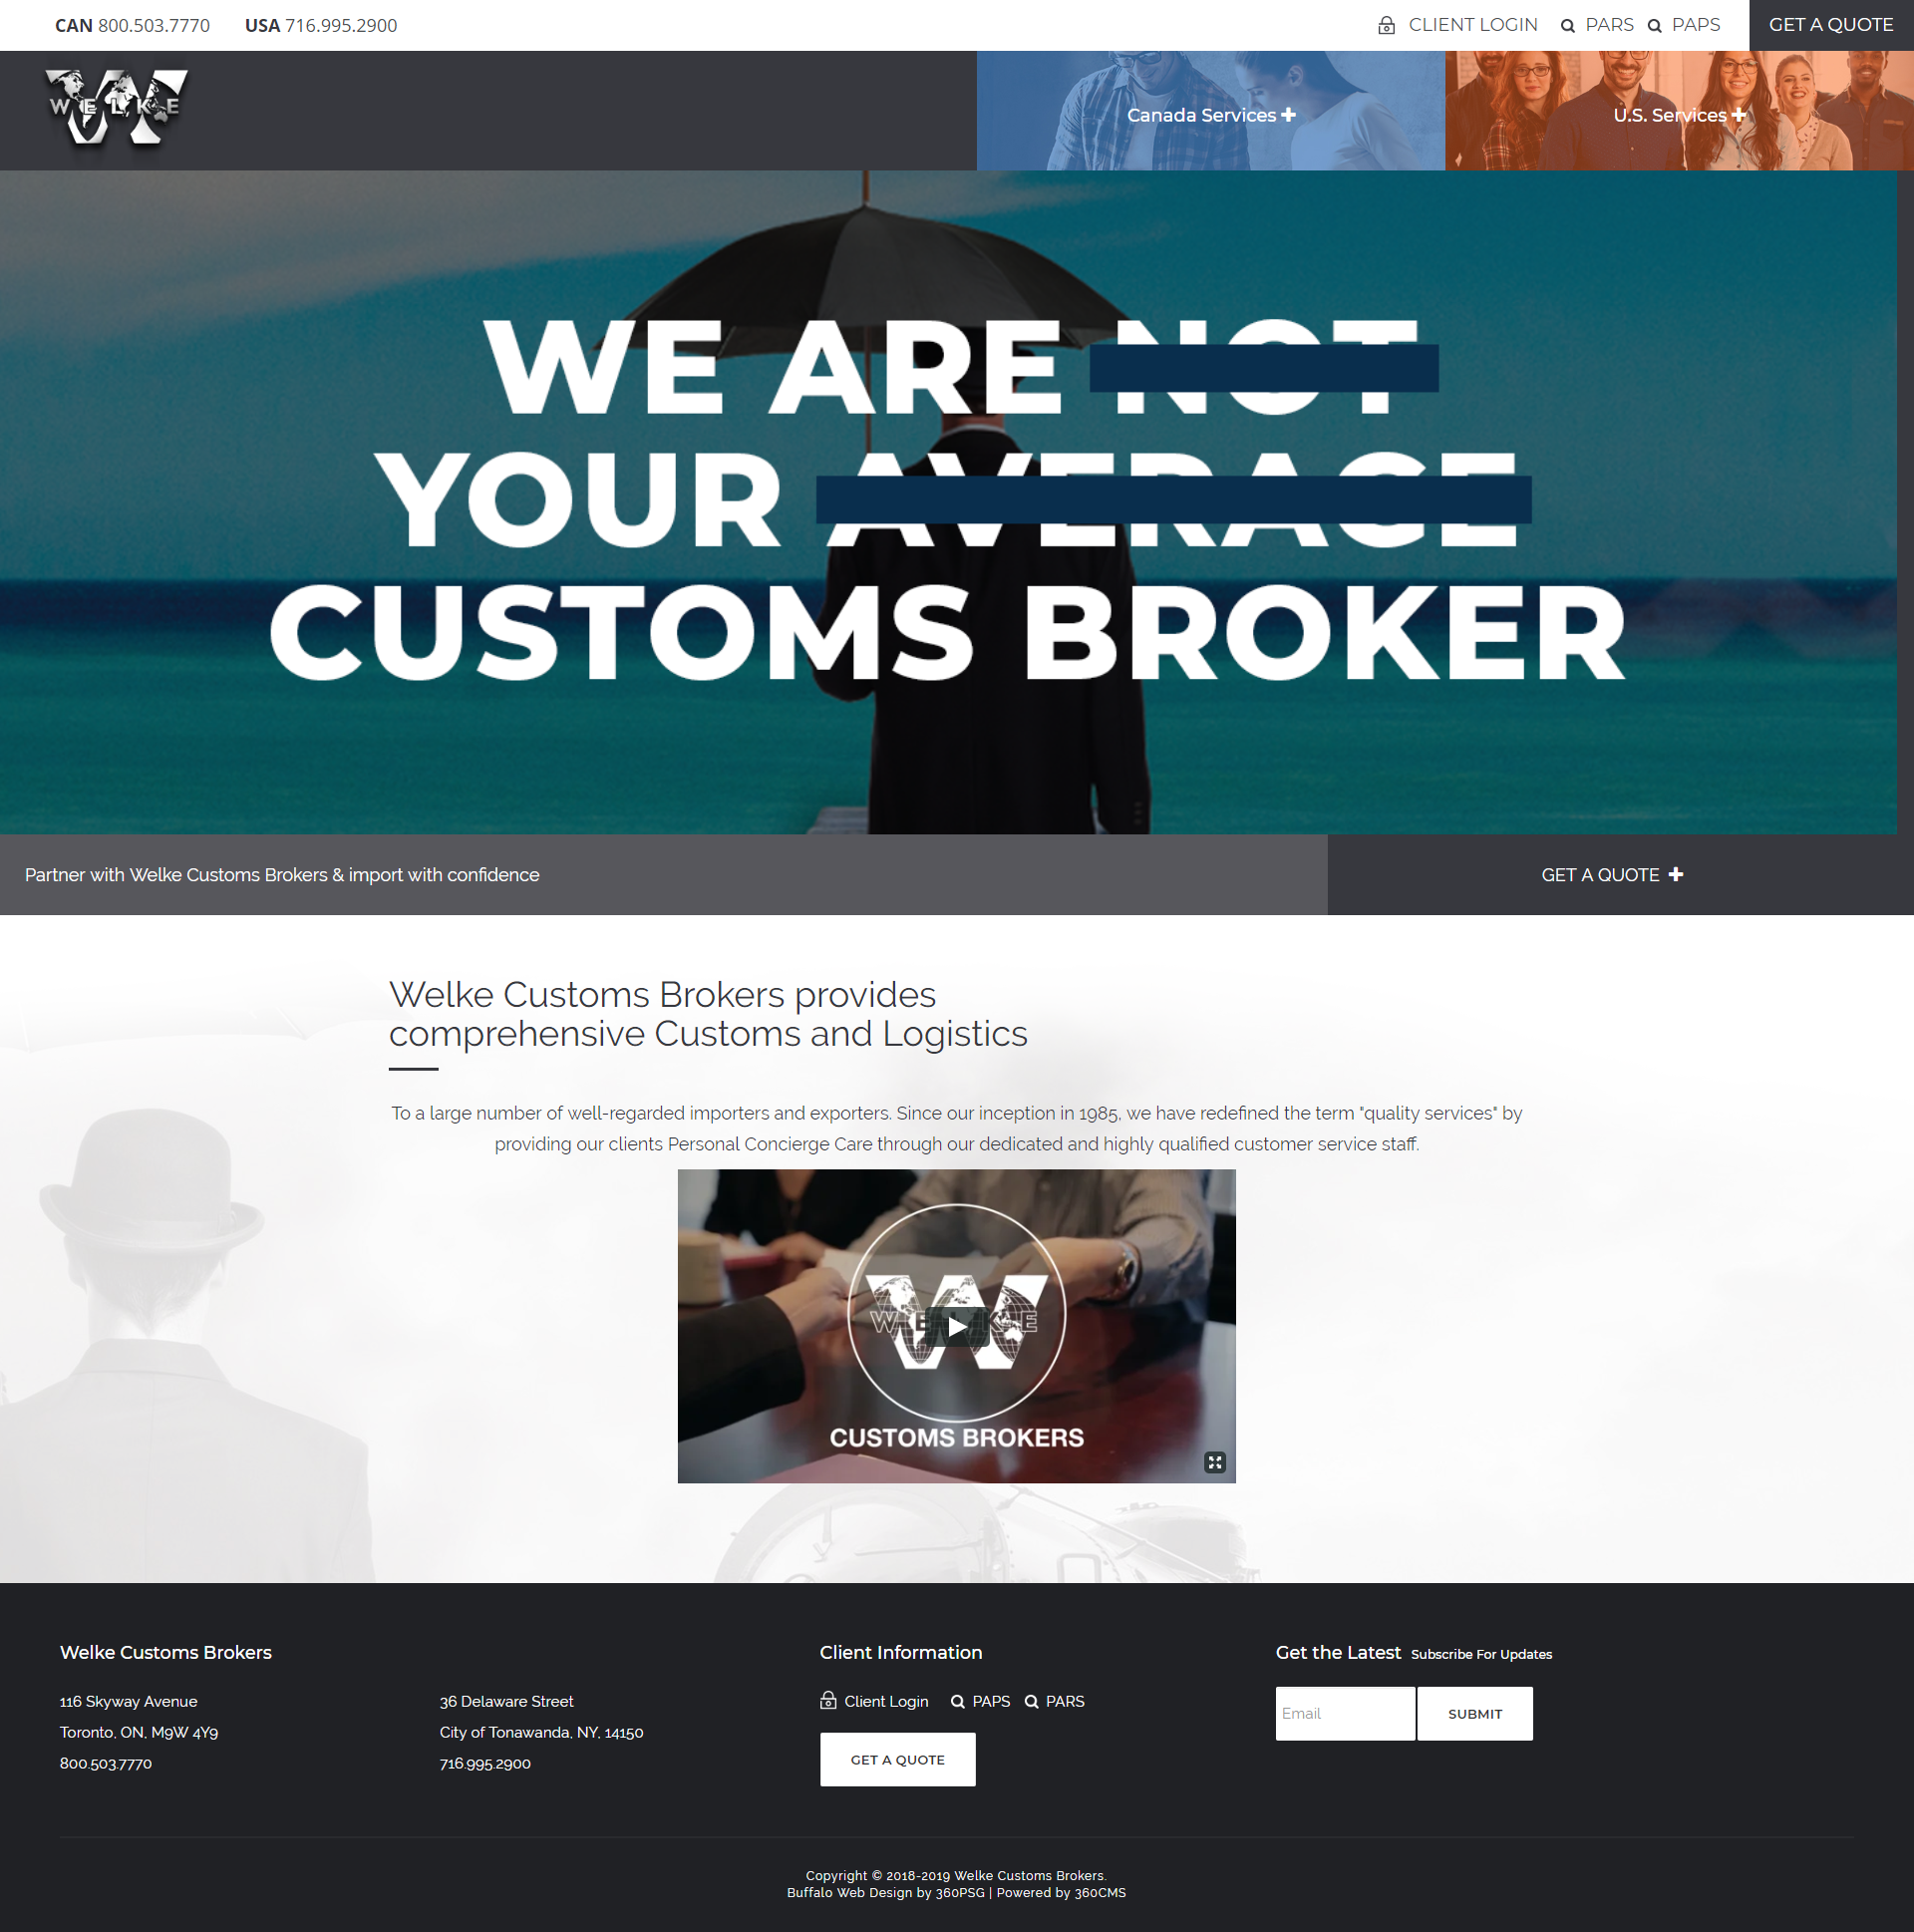 Welke Customs Brokers